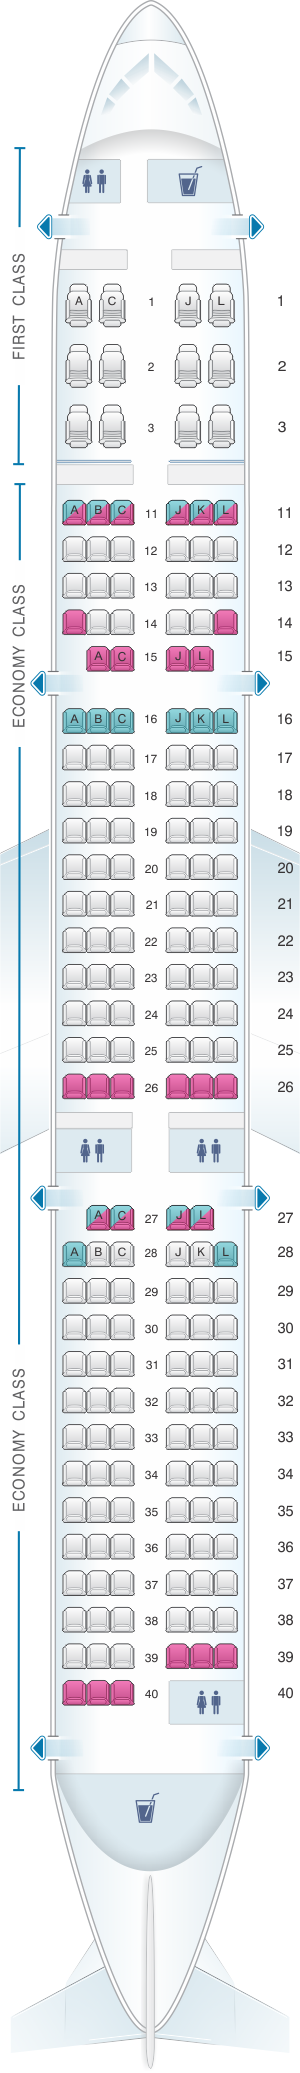 Seat map for Air China Airbus A321 200 Config. 1